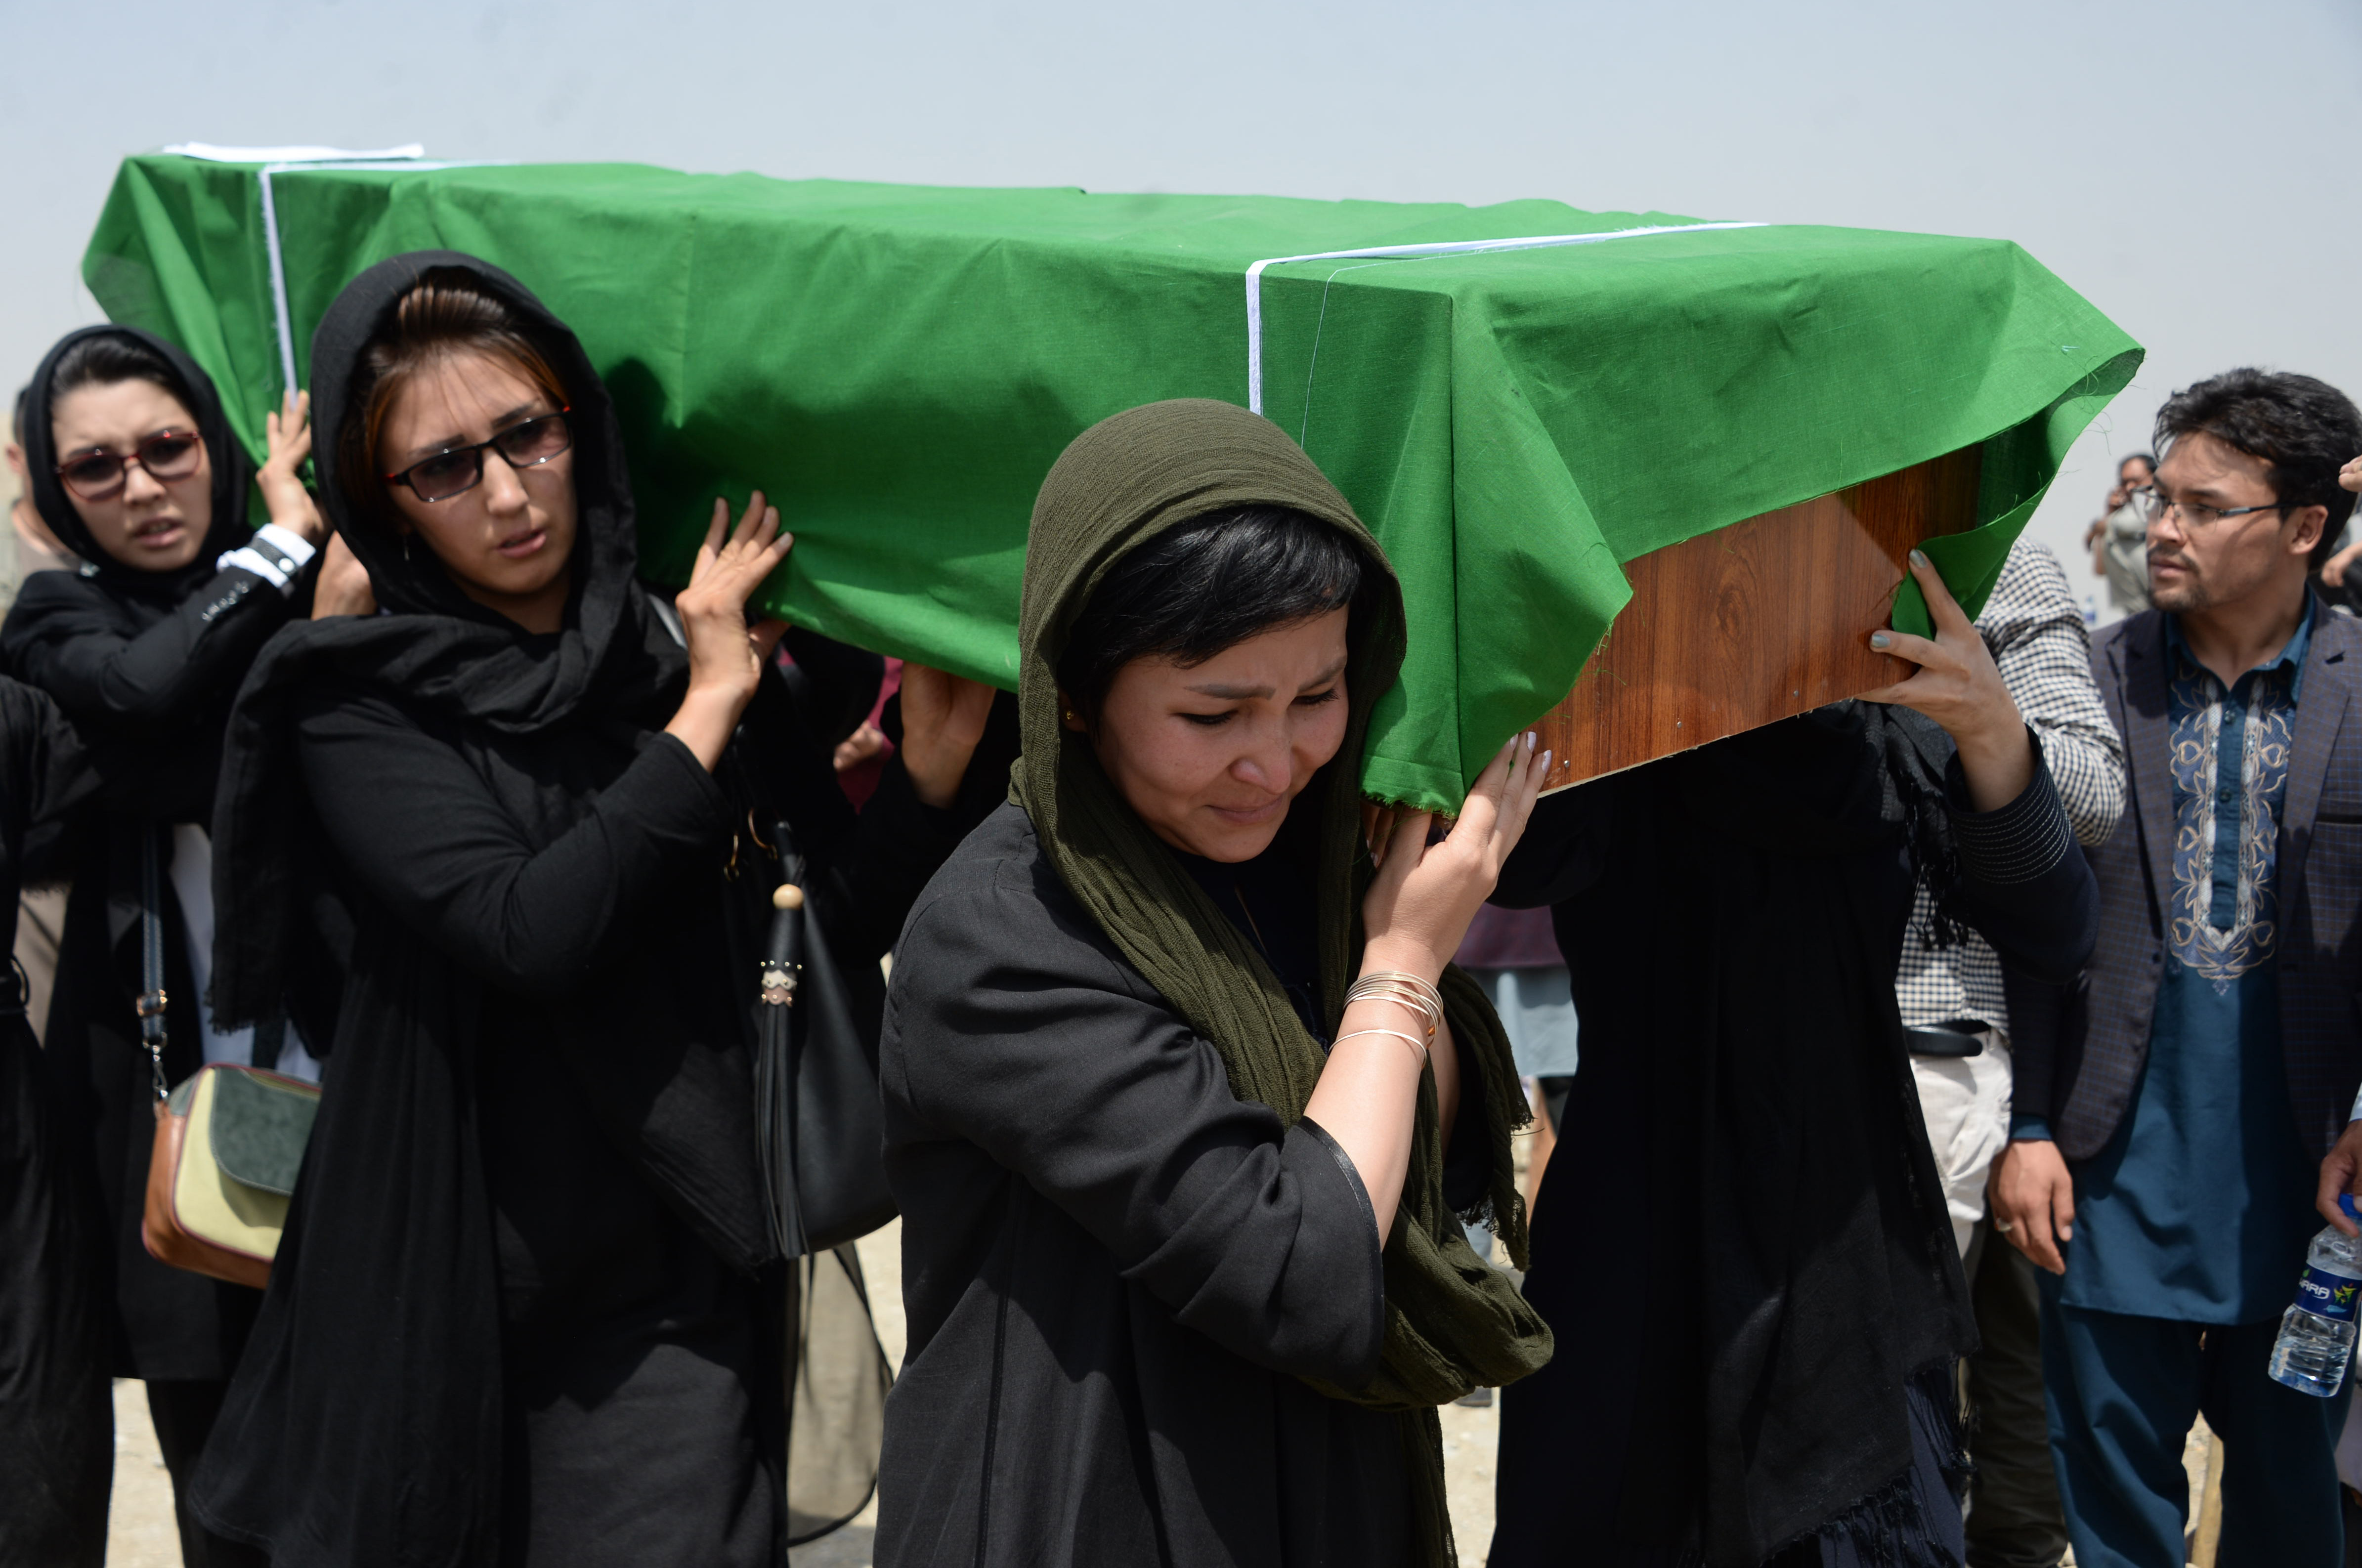 Militants mount failed attack on intelligence centre as mourners bury teen dead